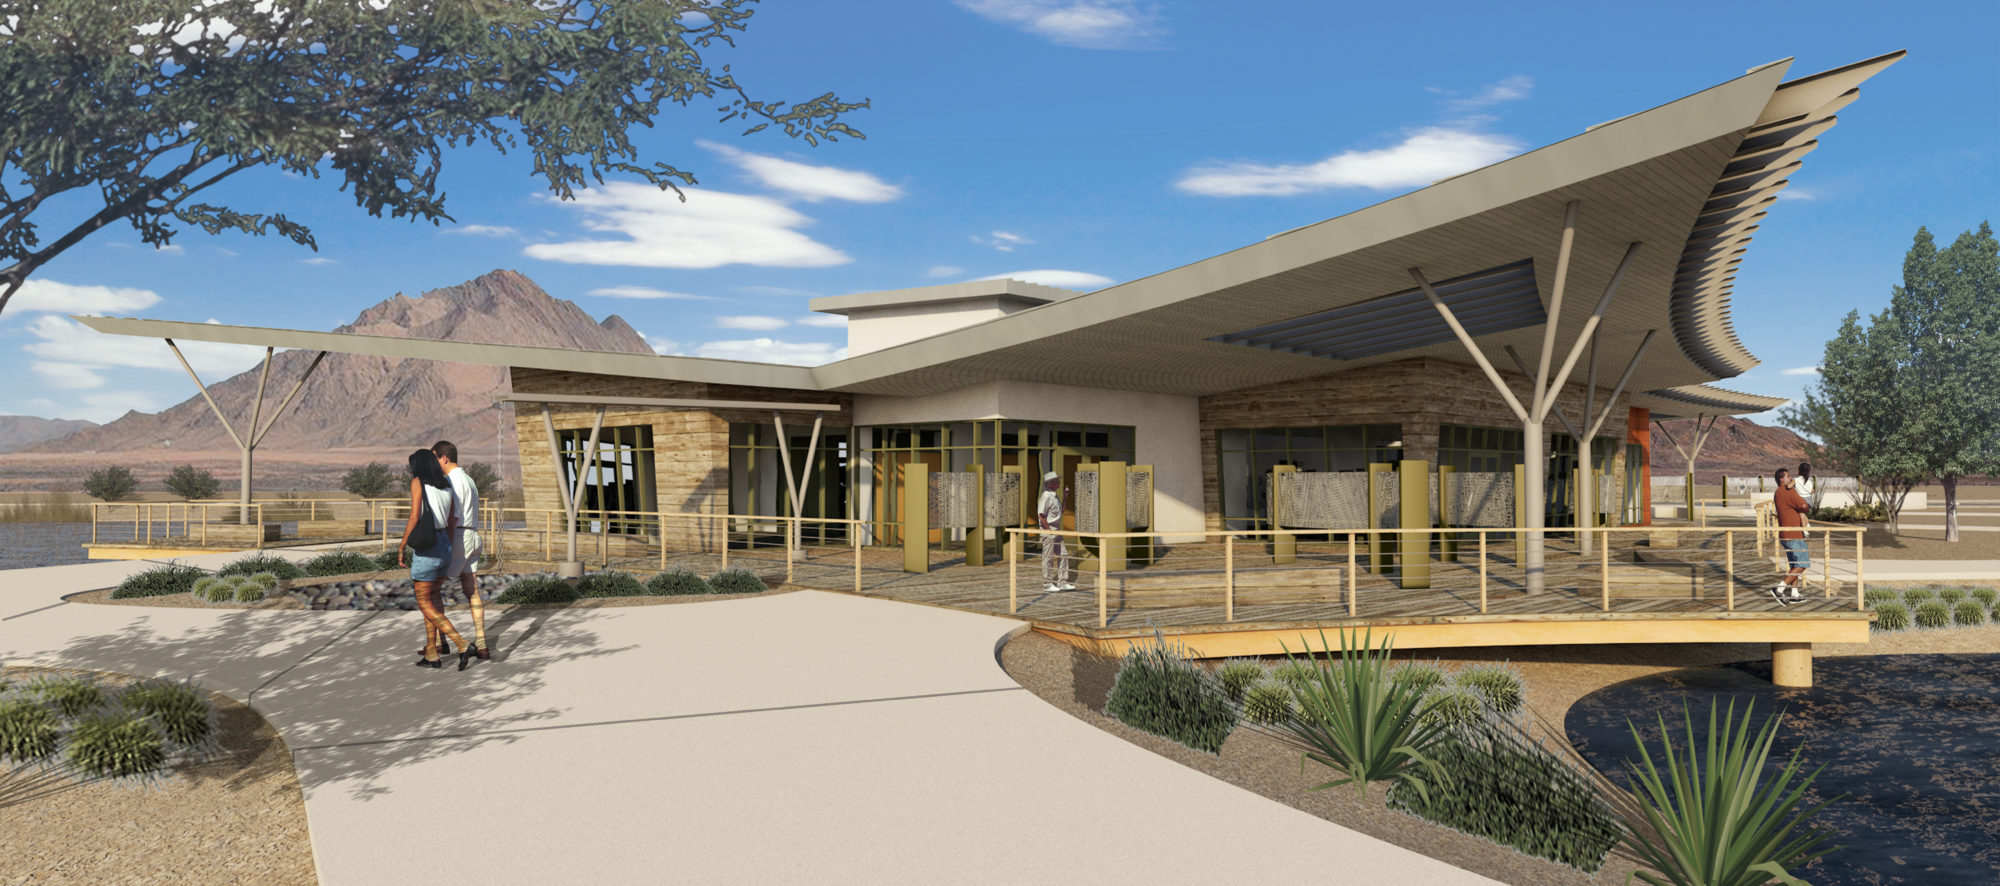 A rendering of the City of Henderson Bird Viewing Preserve. A project with lots of community engagement in the design process.